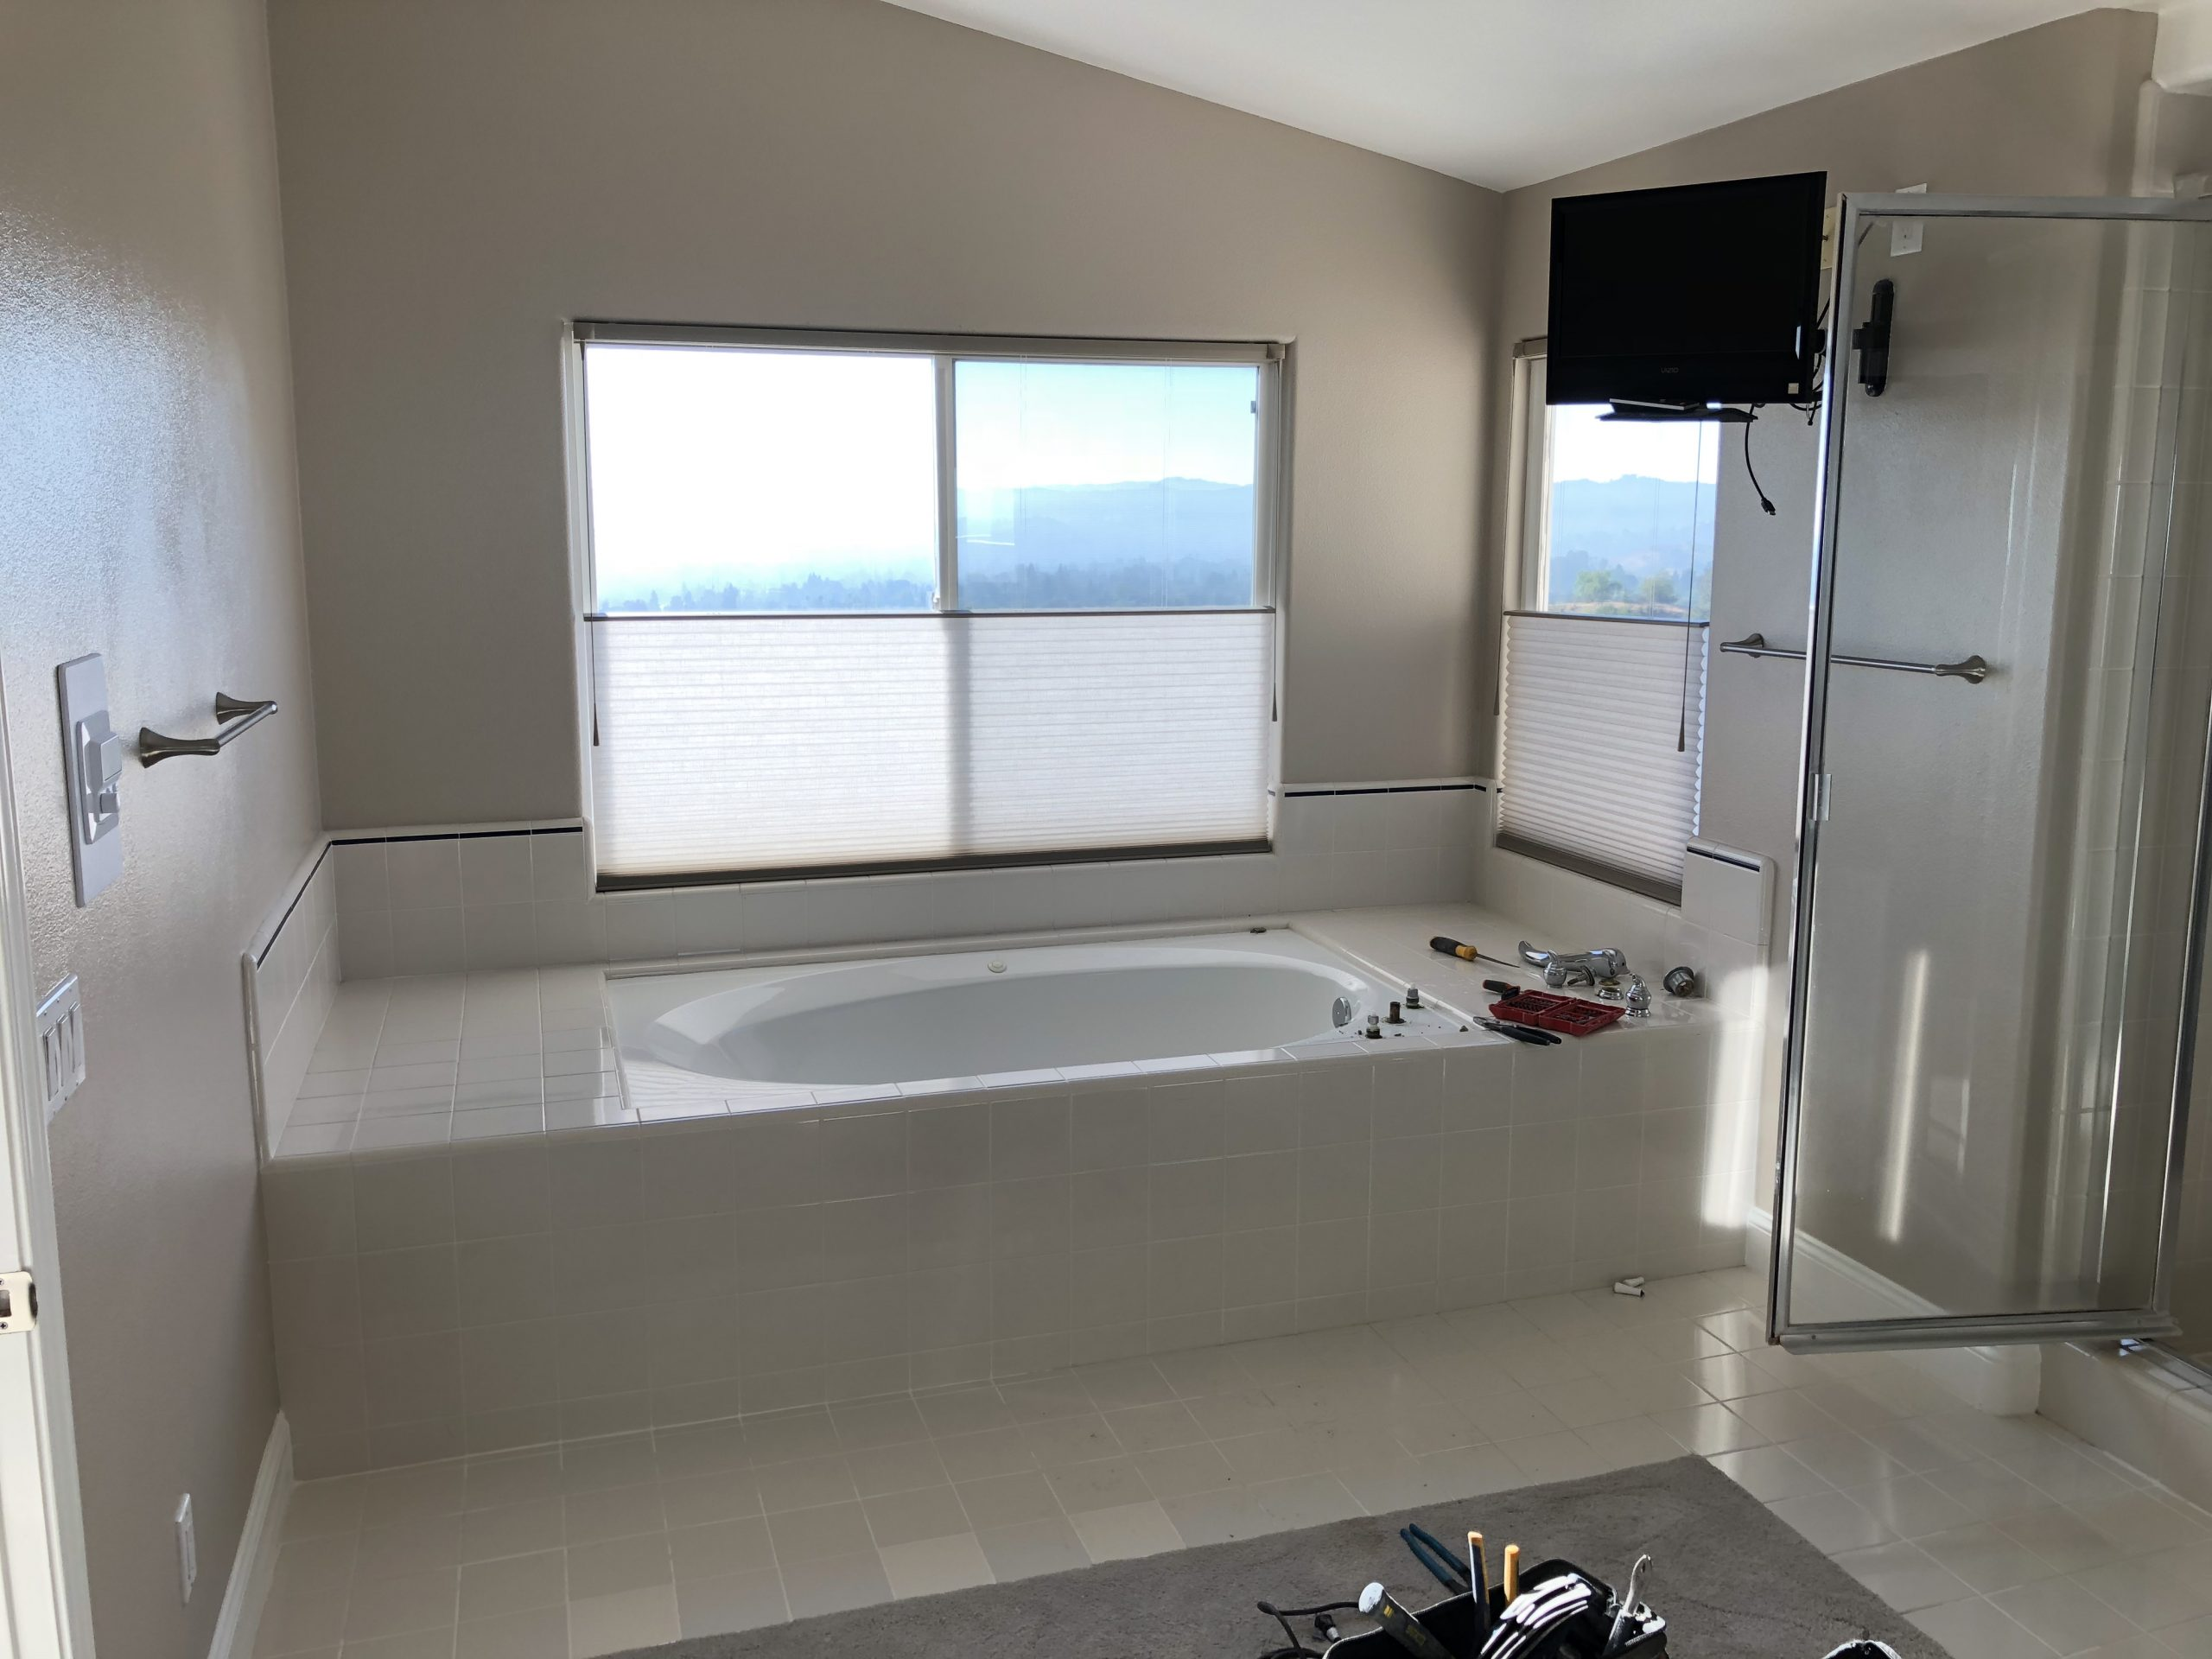 Bathroom remodeling in Woodland Hills CA - Los Angeles ...